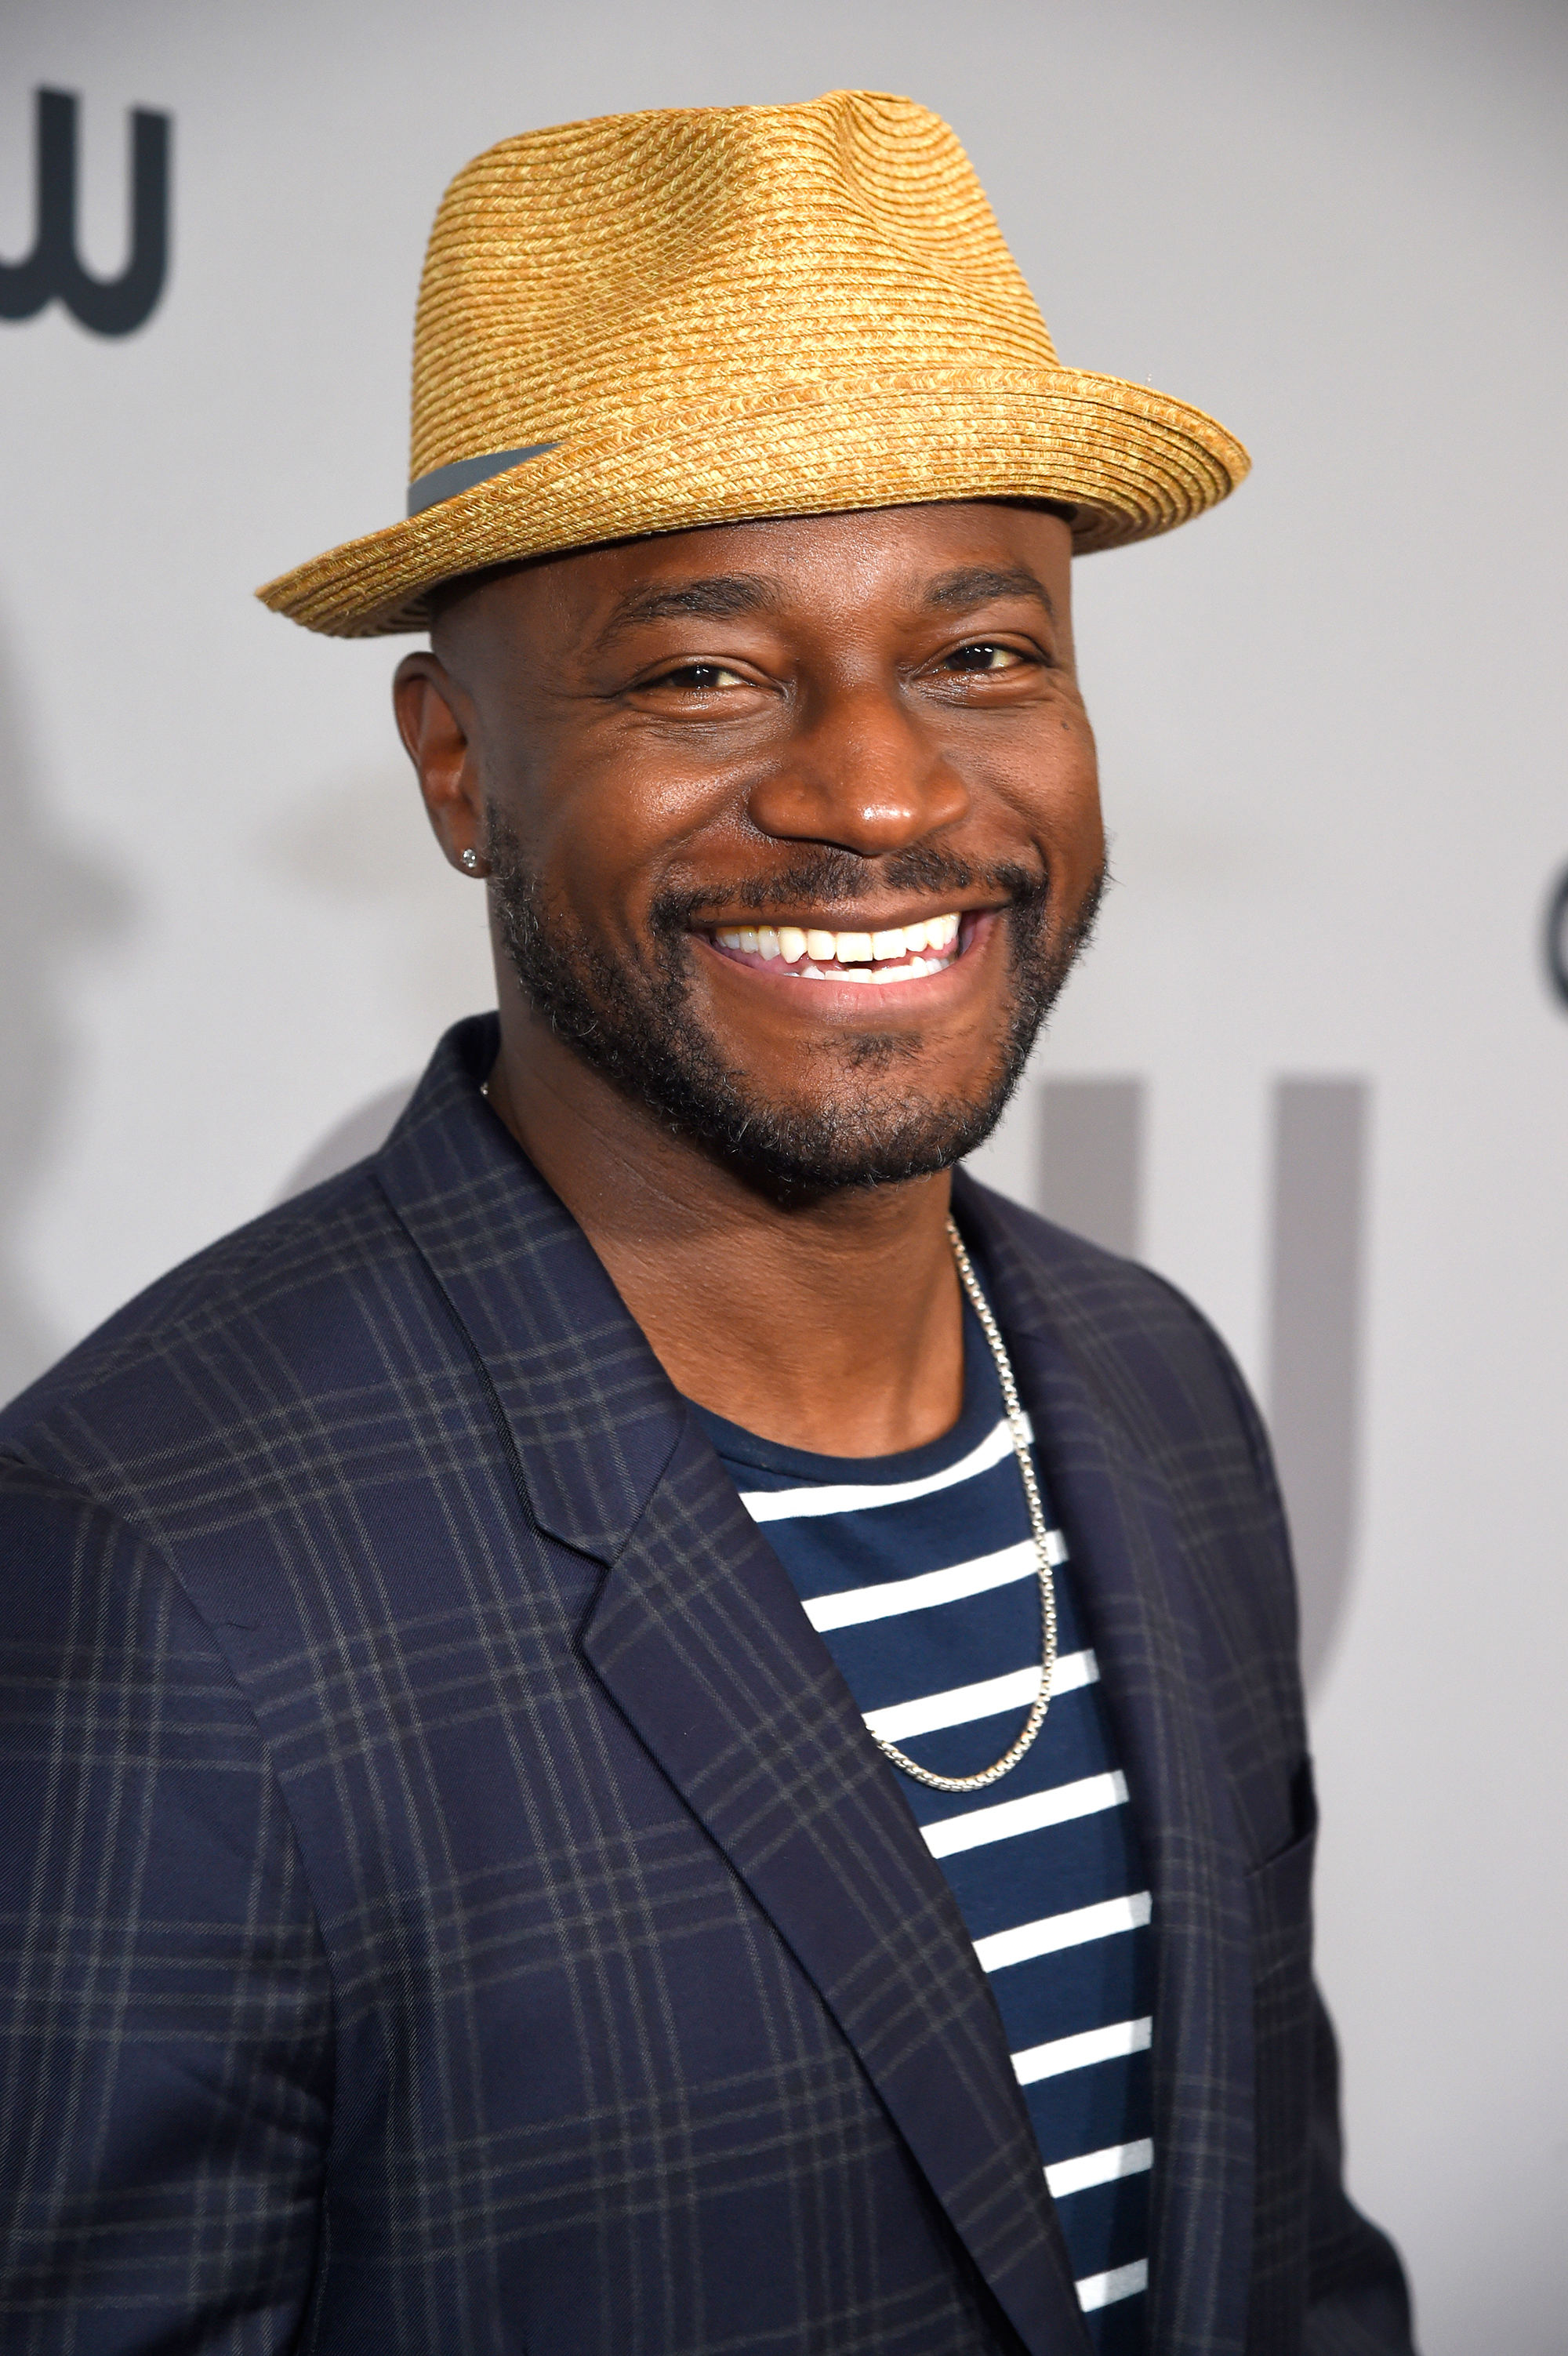 The Stars Joining Fall TV - In The CW's new high school drama All American , Taye Diggs takes on the role of Beverly Hills High School coach Baker. Diggs, who has done his fair share of TV over the years, was drawn to the role because of the politics and subject matters it dives into.